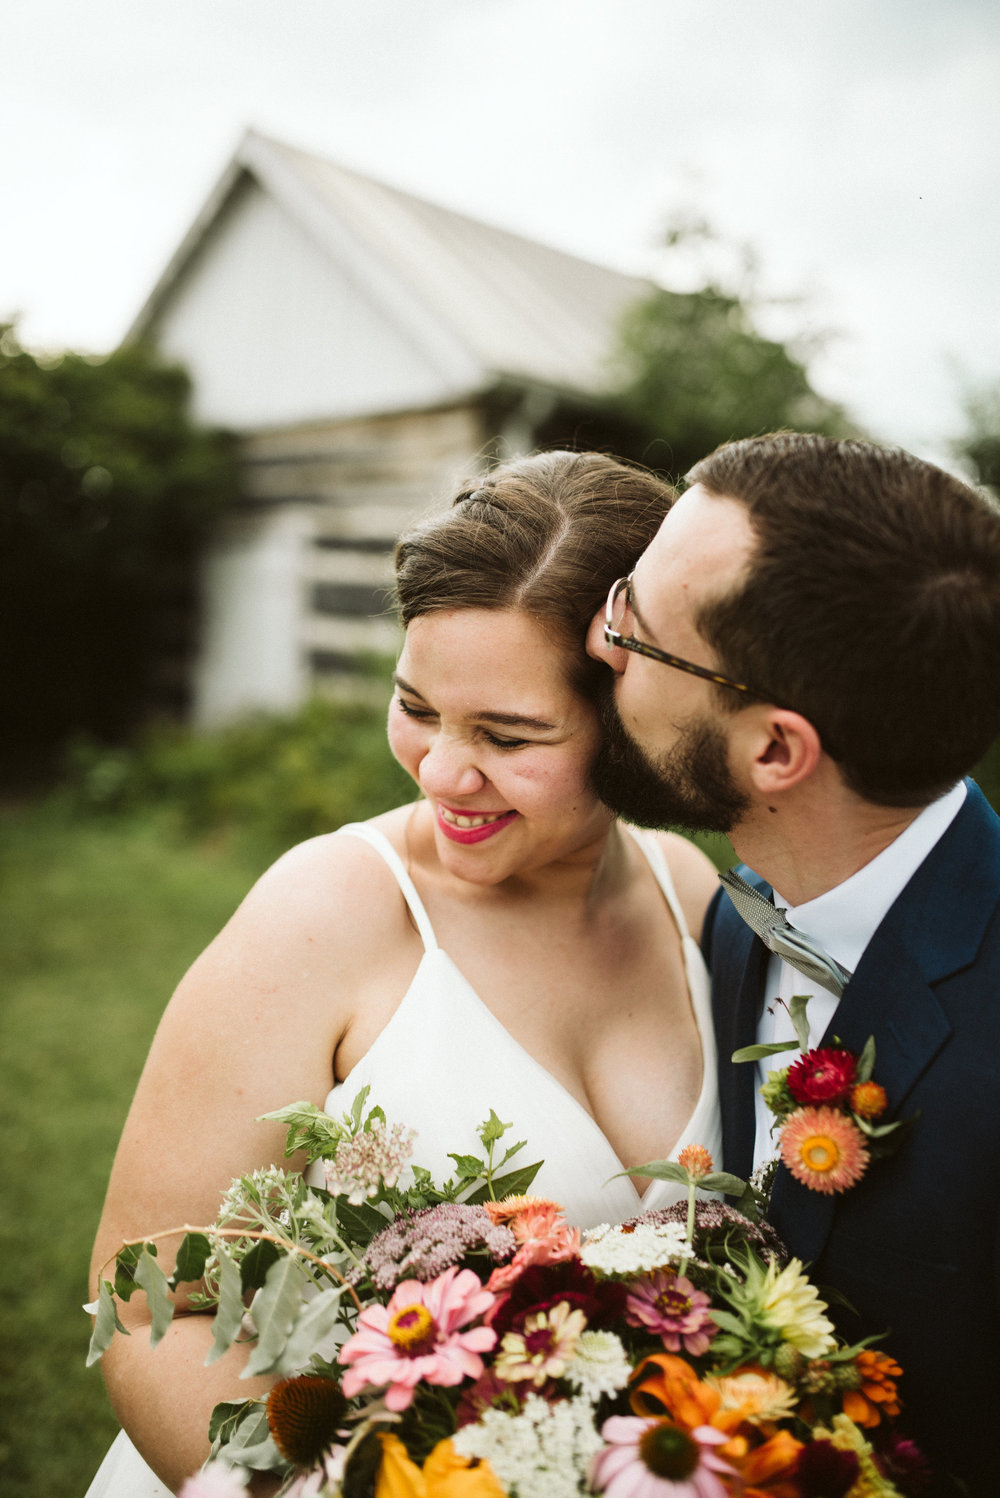 Rocklands Farm, Maryland, Intimate Wedding, Baltimore Wedding Photographer, Sungold Flower Co, Rustic, Romantic, Barn Wedding, Groom Kissing Bride's Head, Bride Laughing